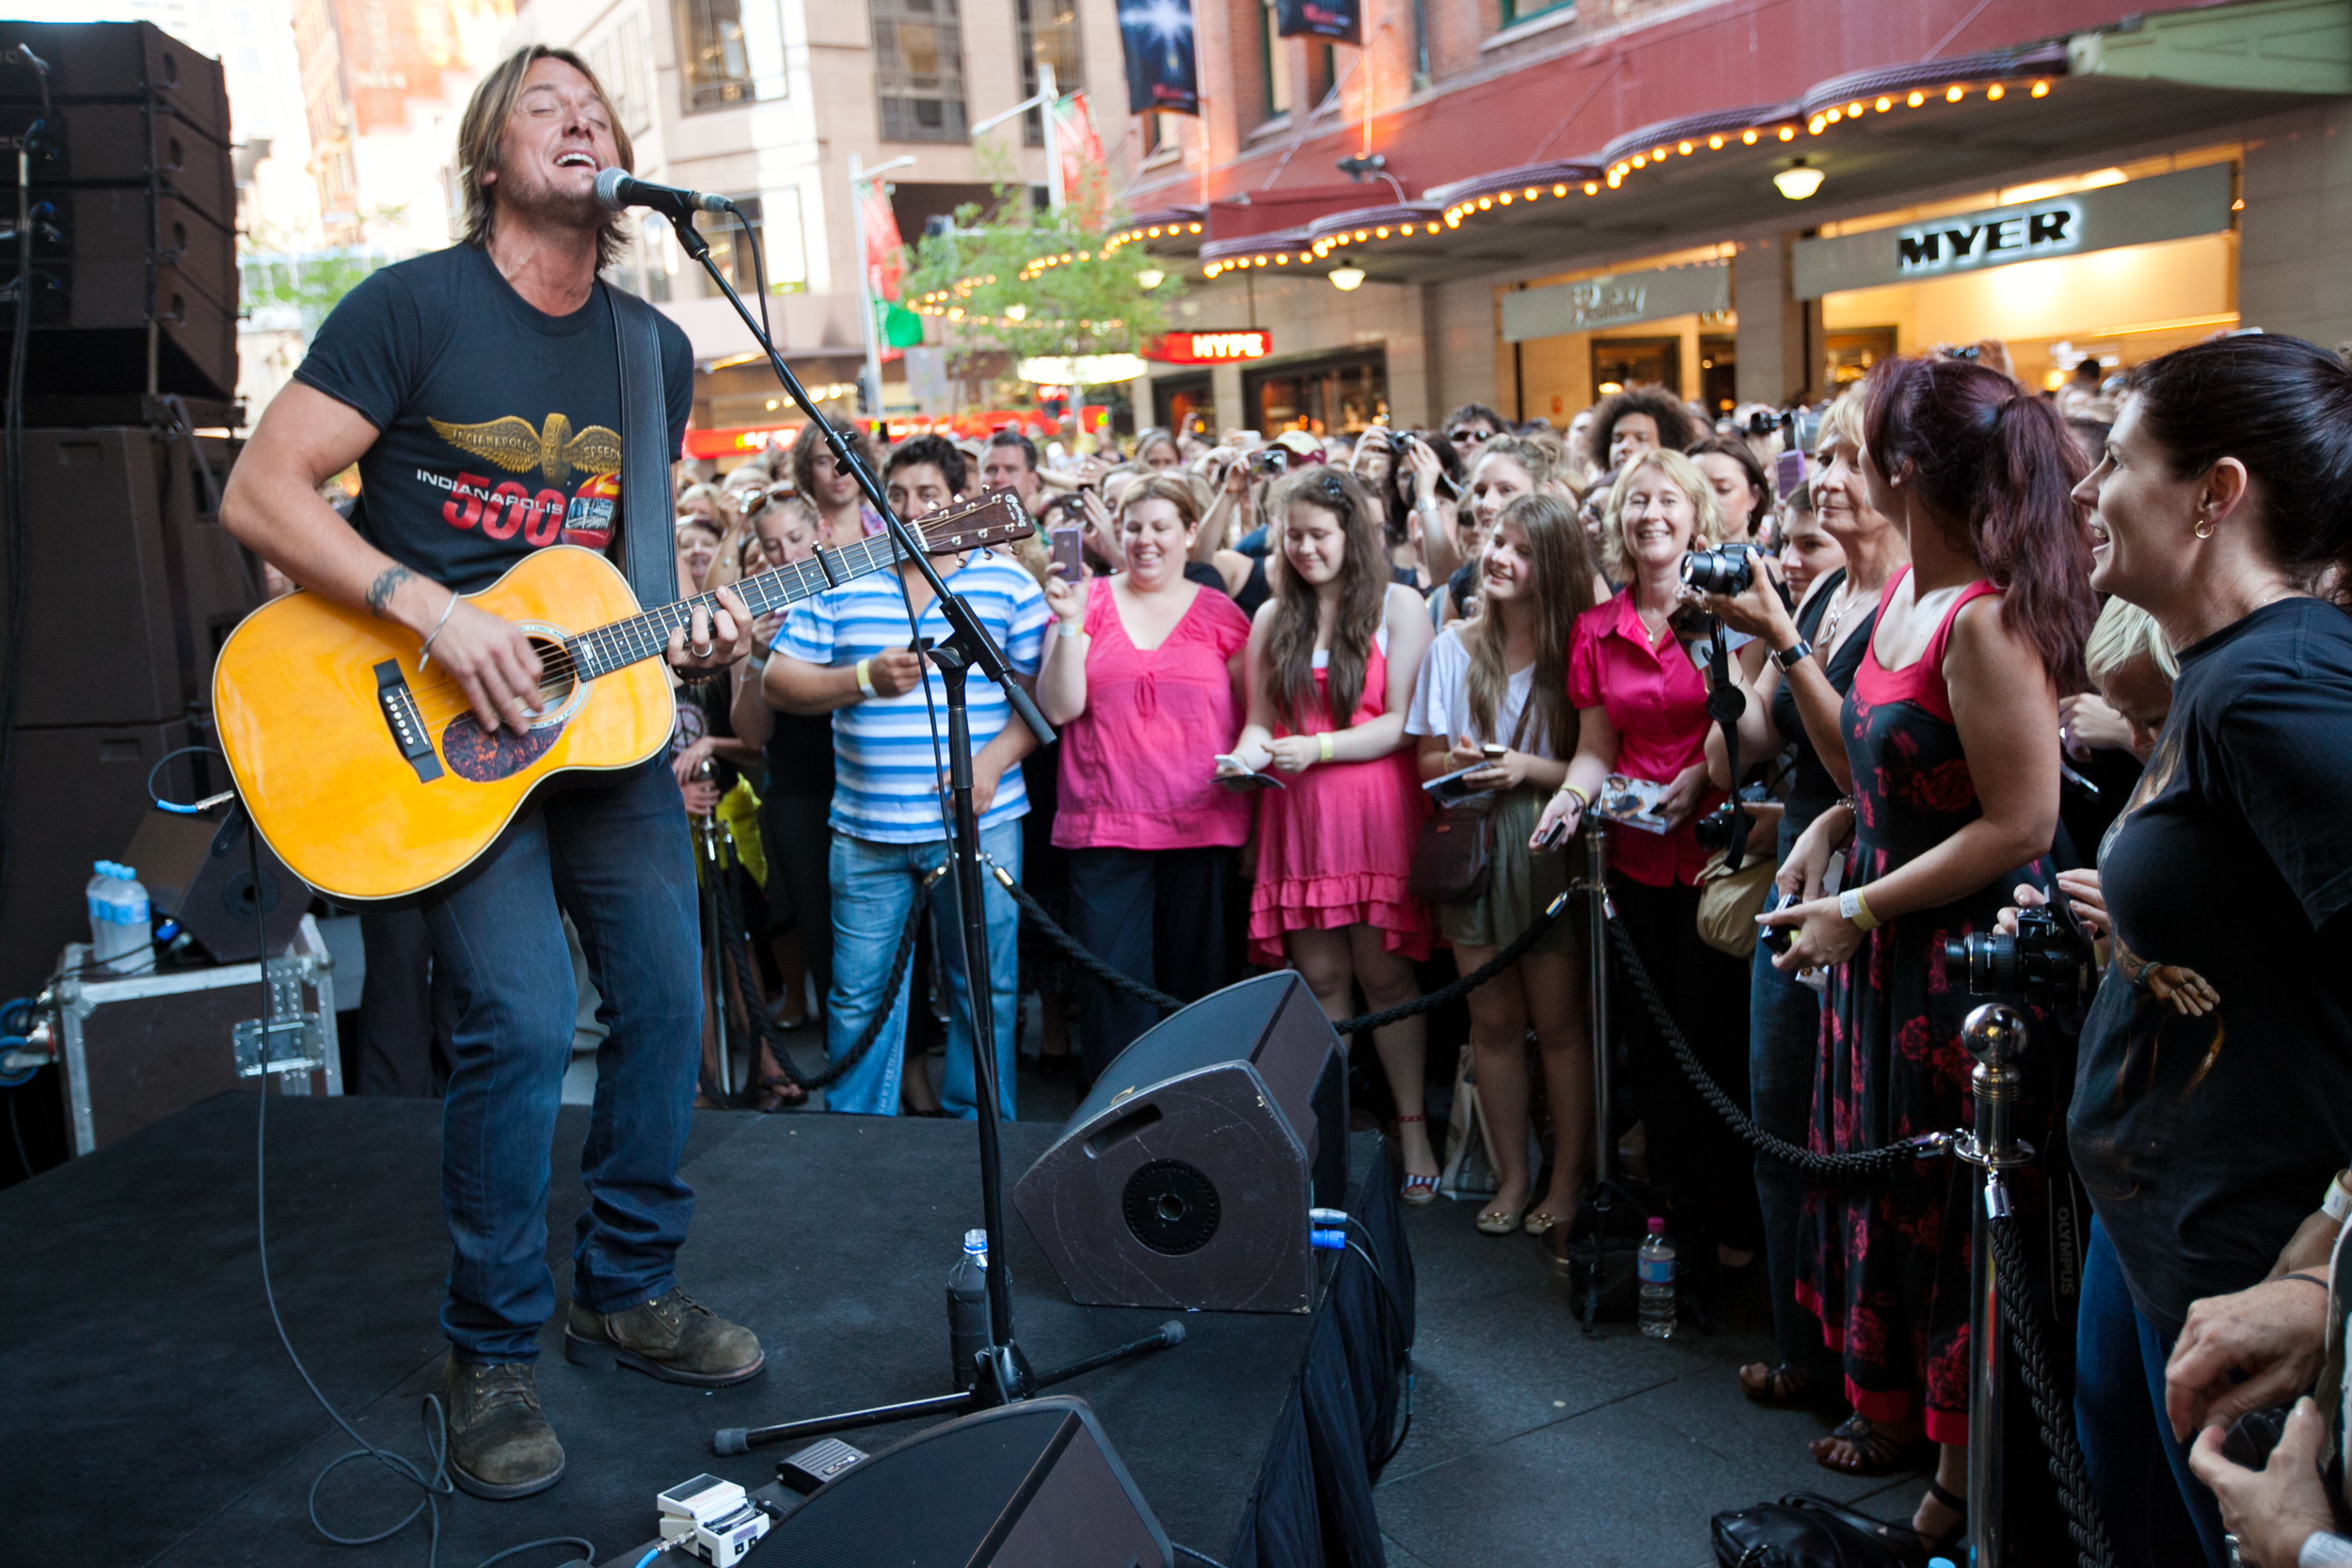 Keith Urban performs in Pitt St Mall